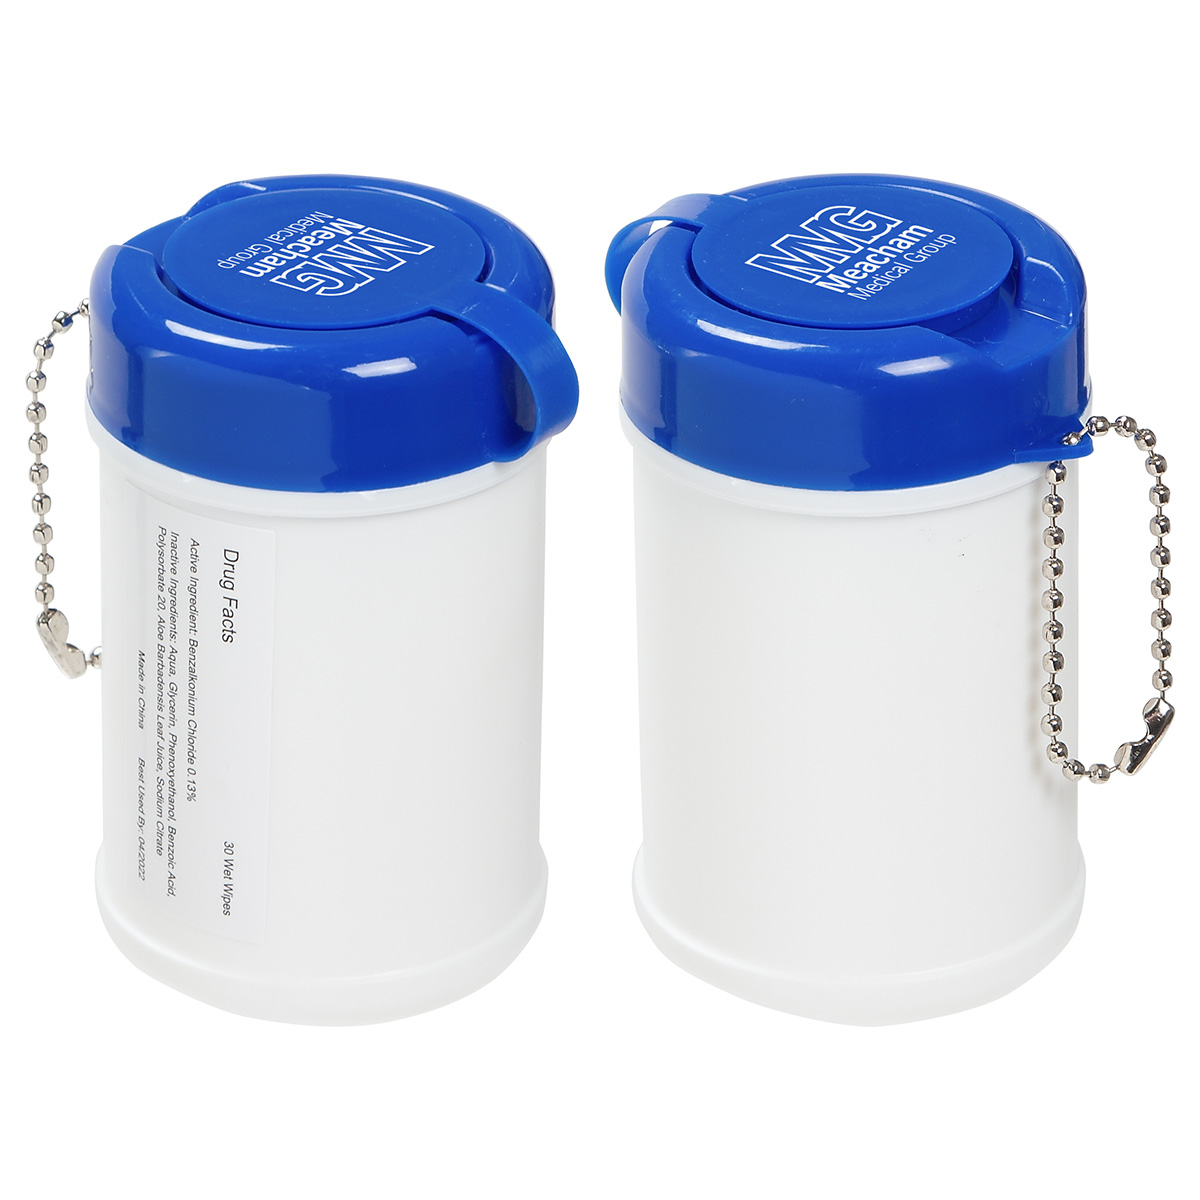 Travel Well Sanitizer Wipes, WSA-TW11 - 1 Colour Imprint